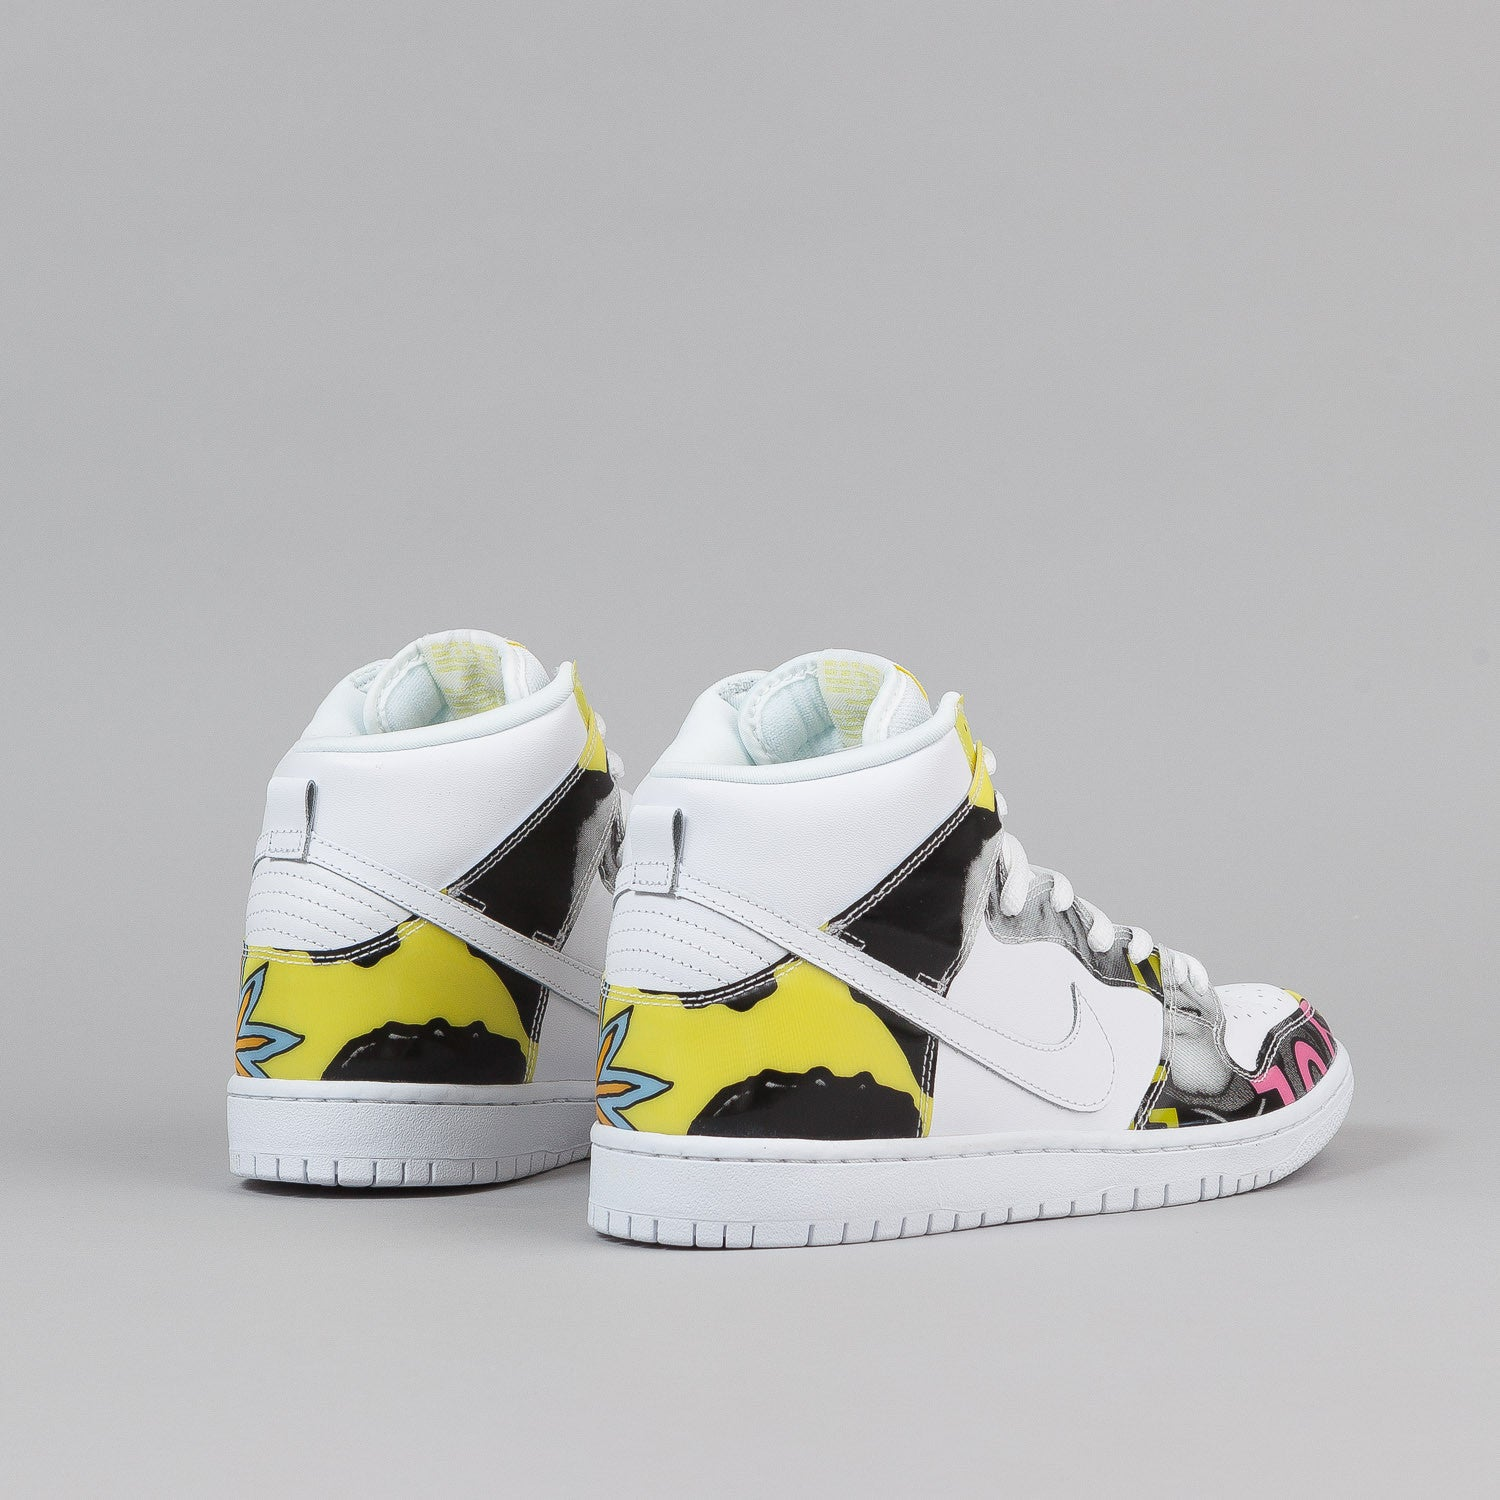 Nike SB Dunk High Premium Quickstrike Shoes - De La Soul